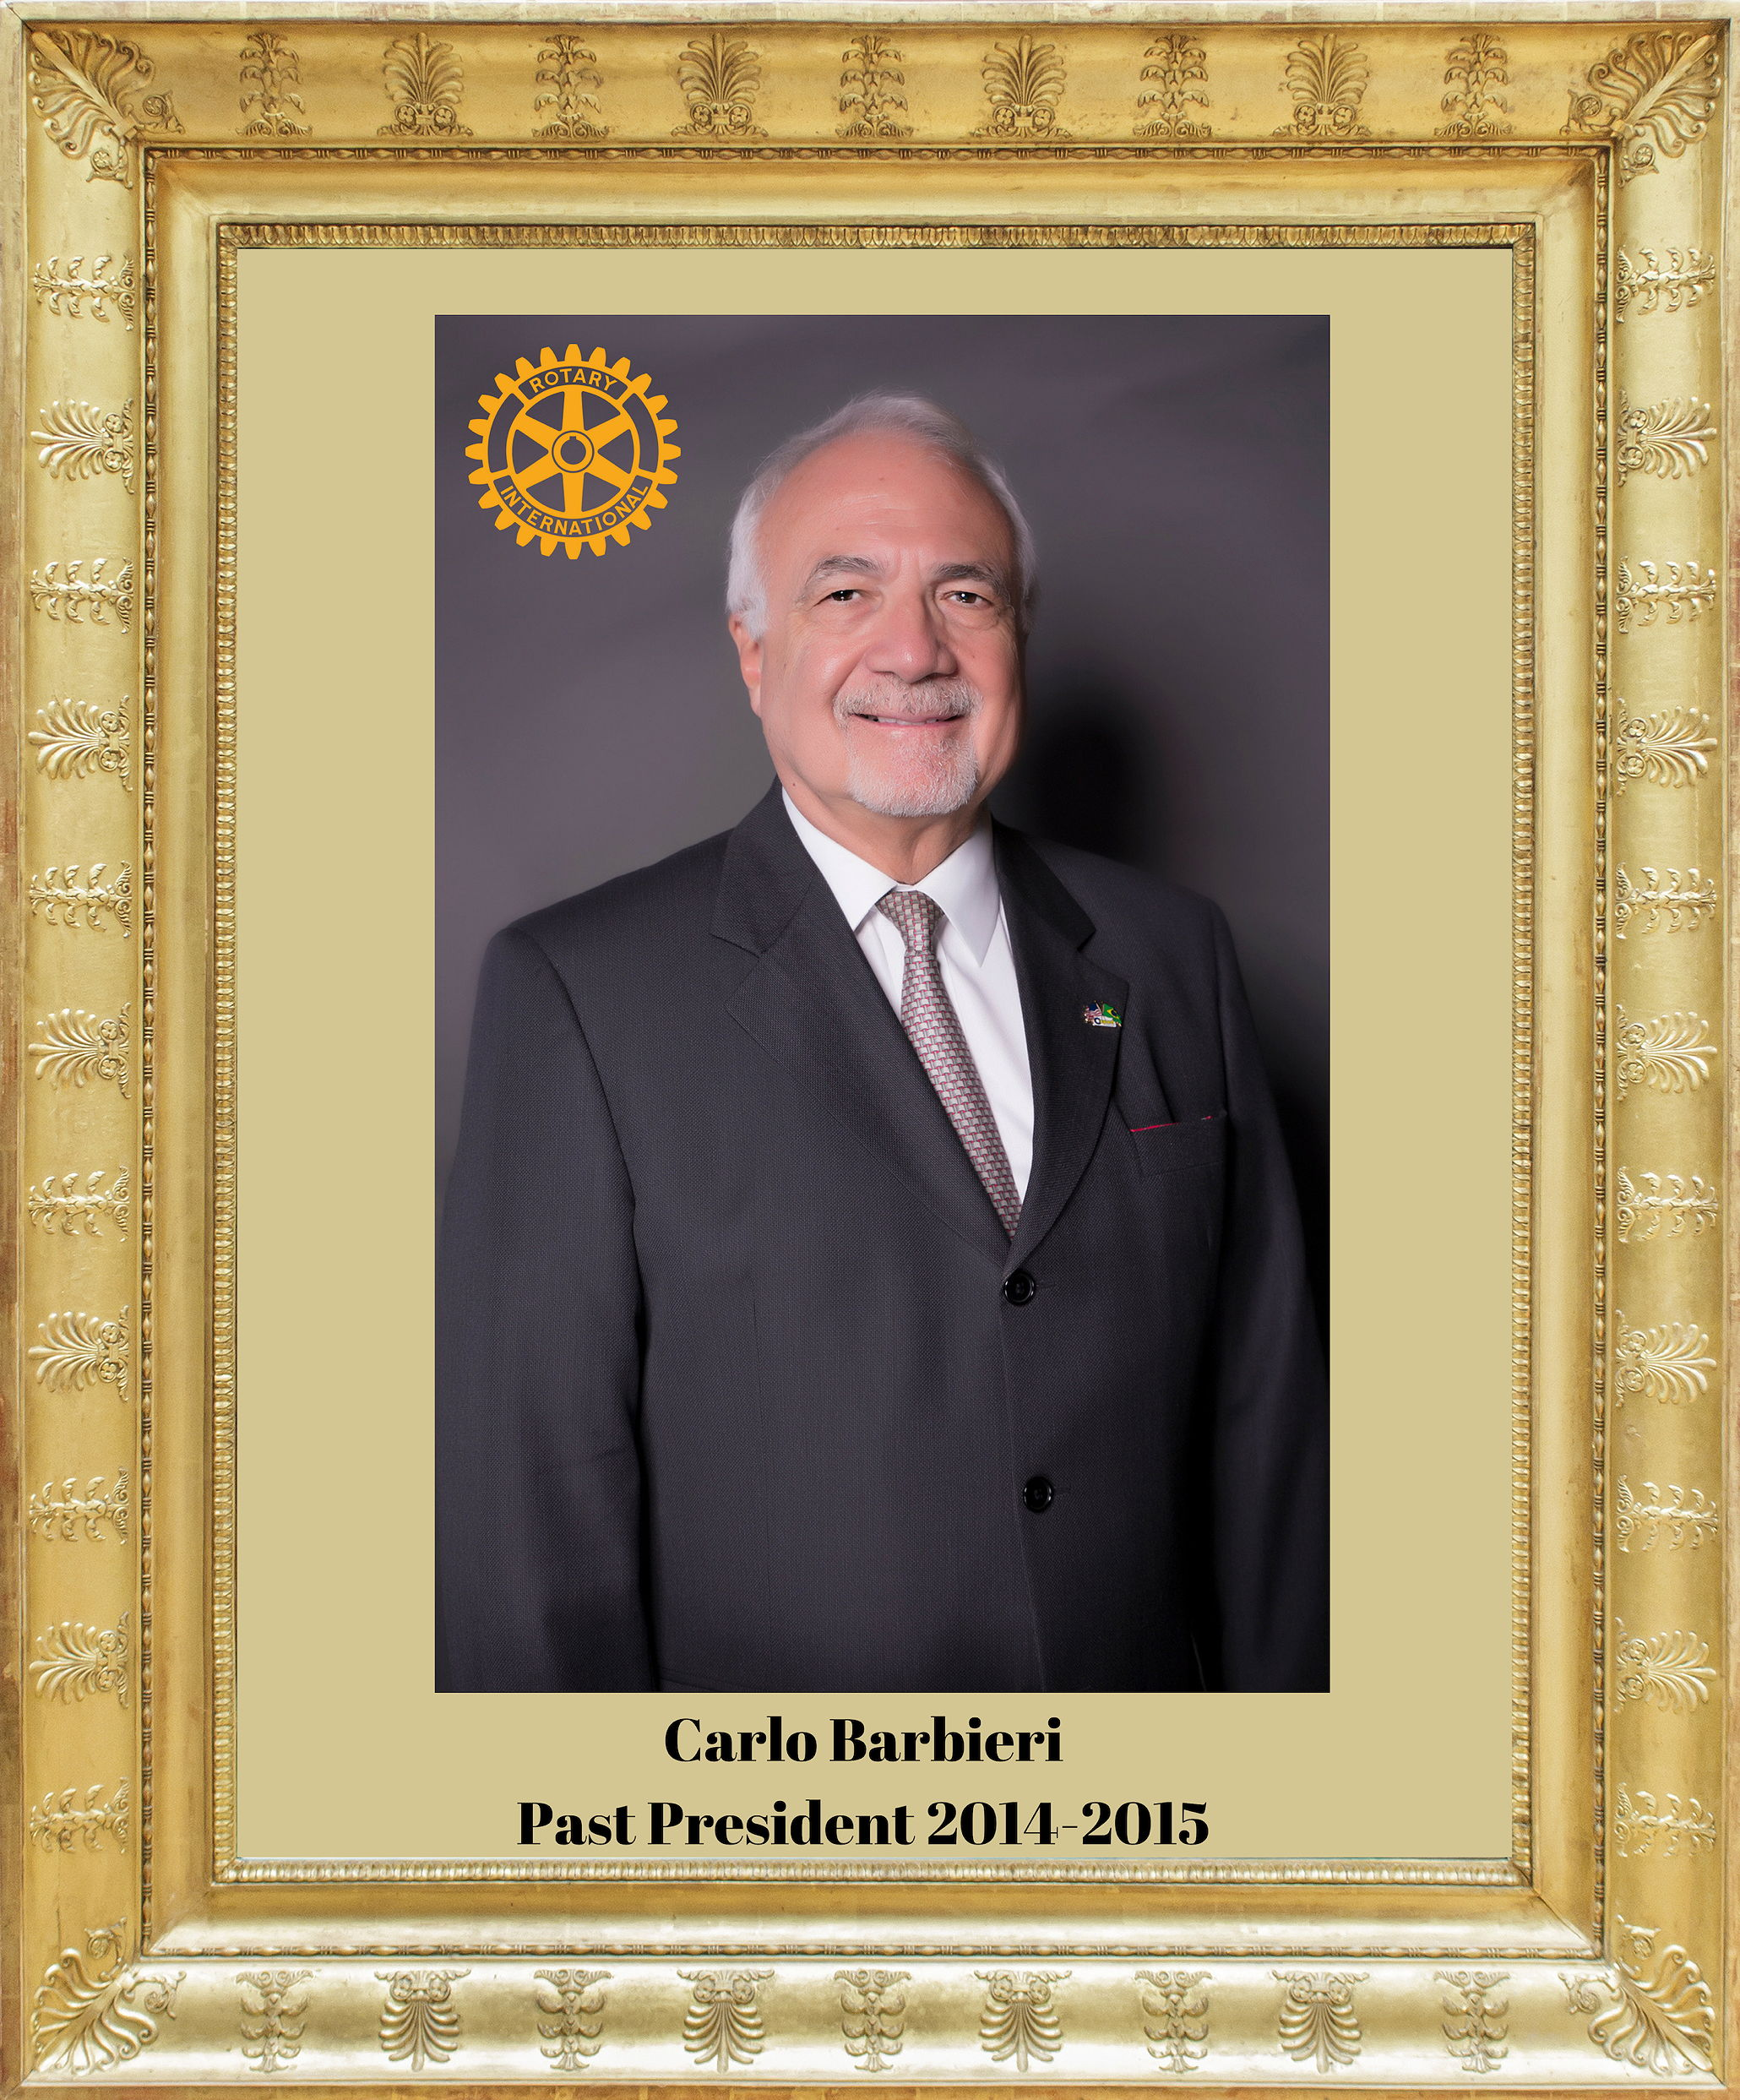 carlo_barbieri_past_president_2014-2015